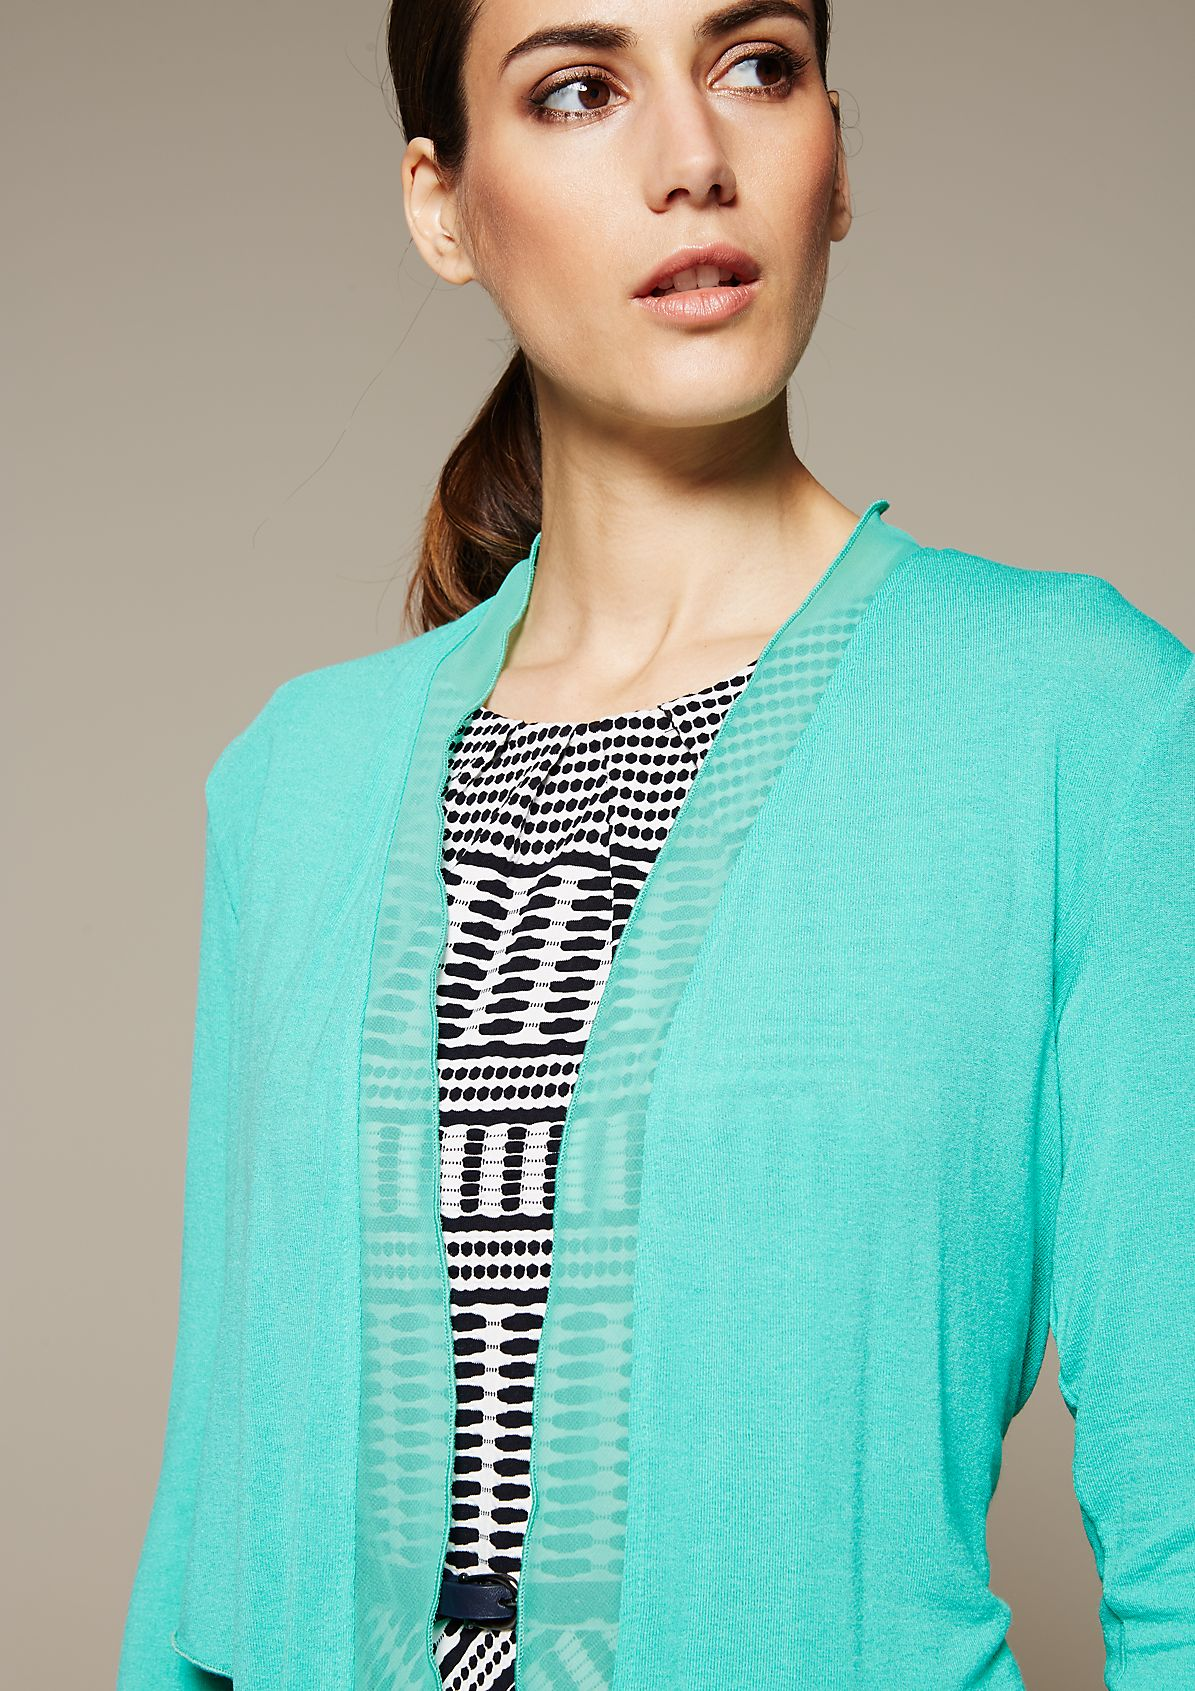 Breezy summer bolero with decorative details from s.Oliver